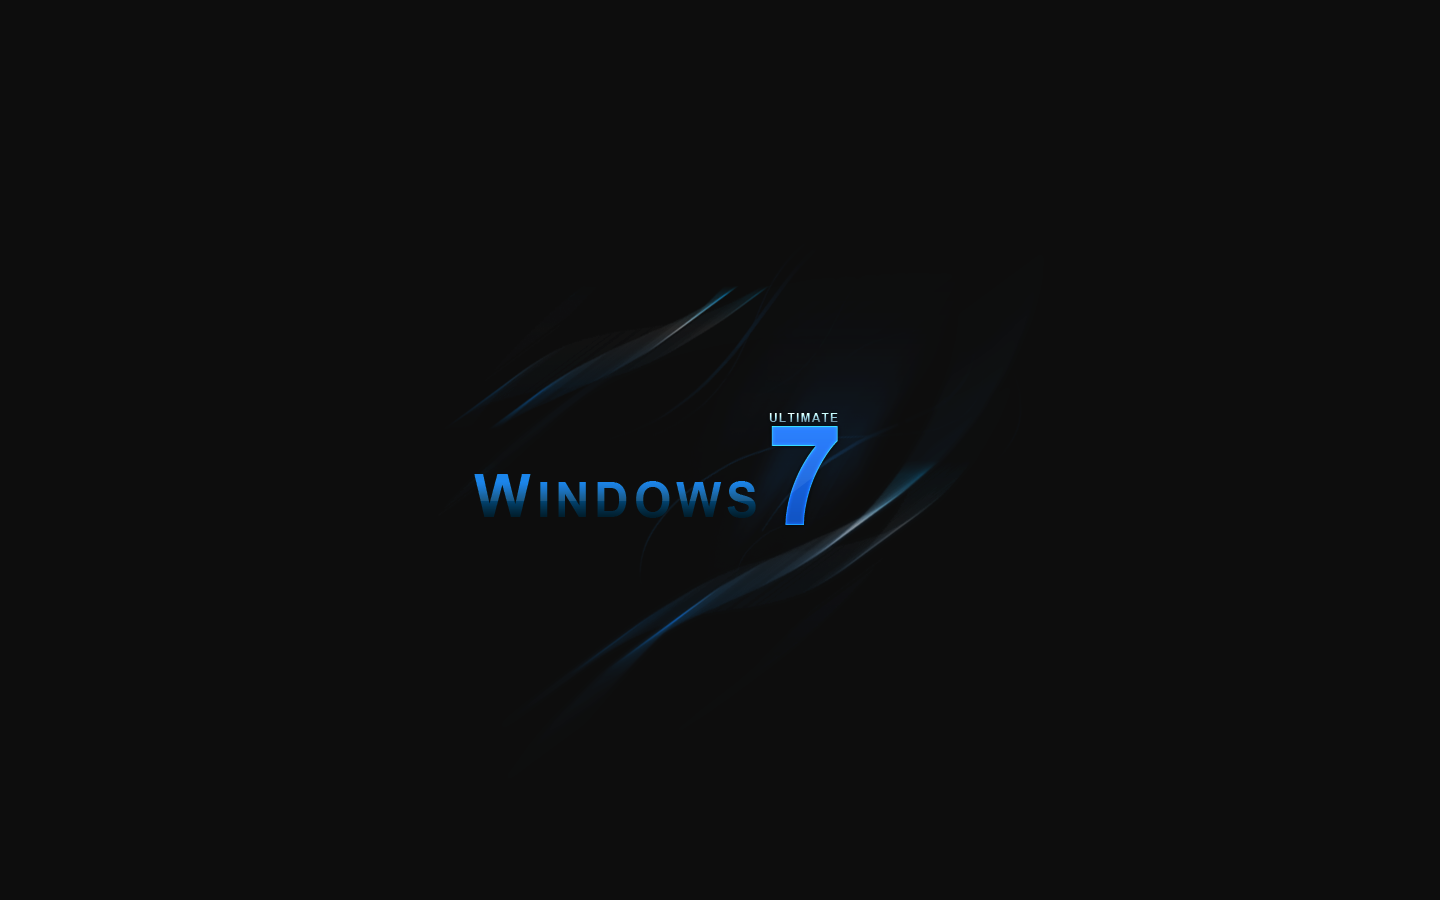 Windows 7 Black Wallpapers 1440x900